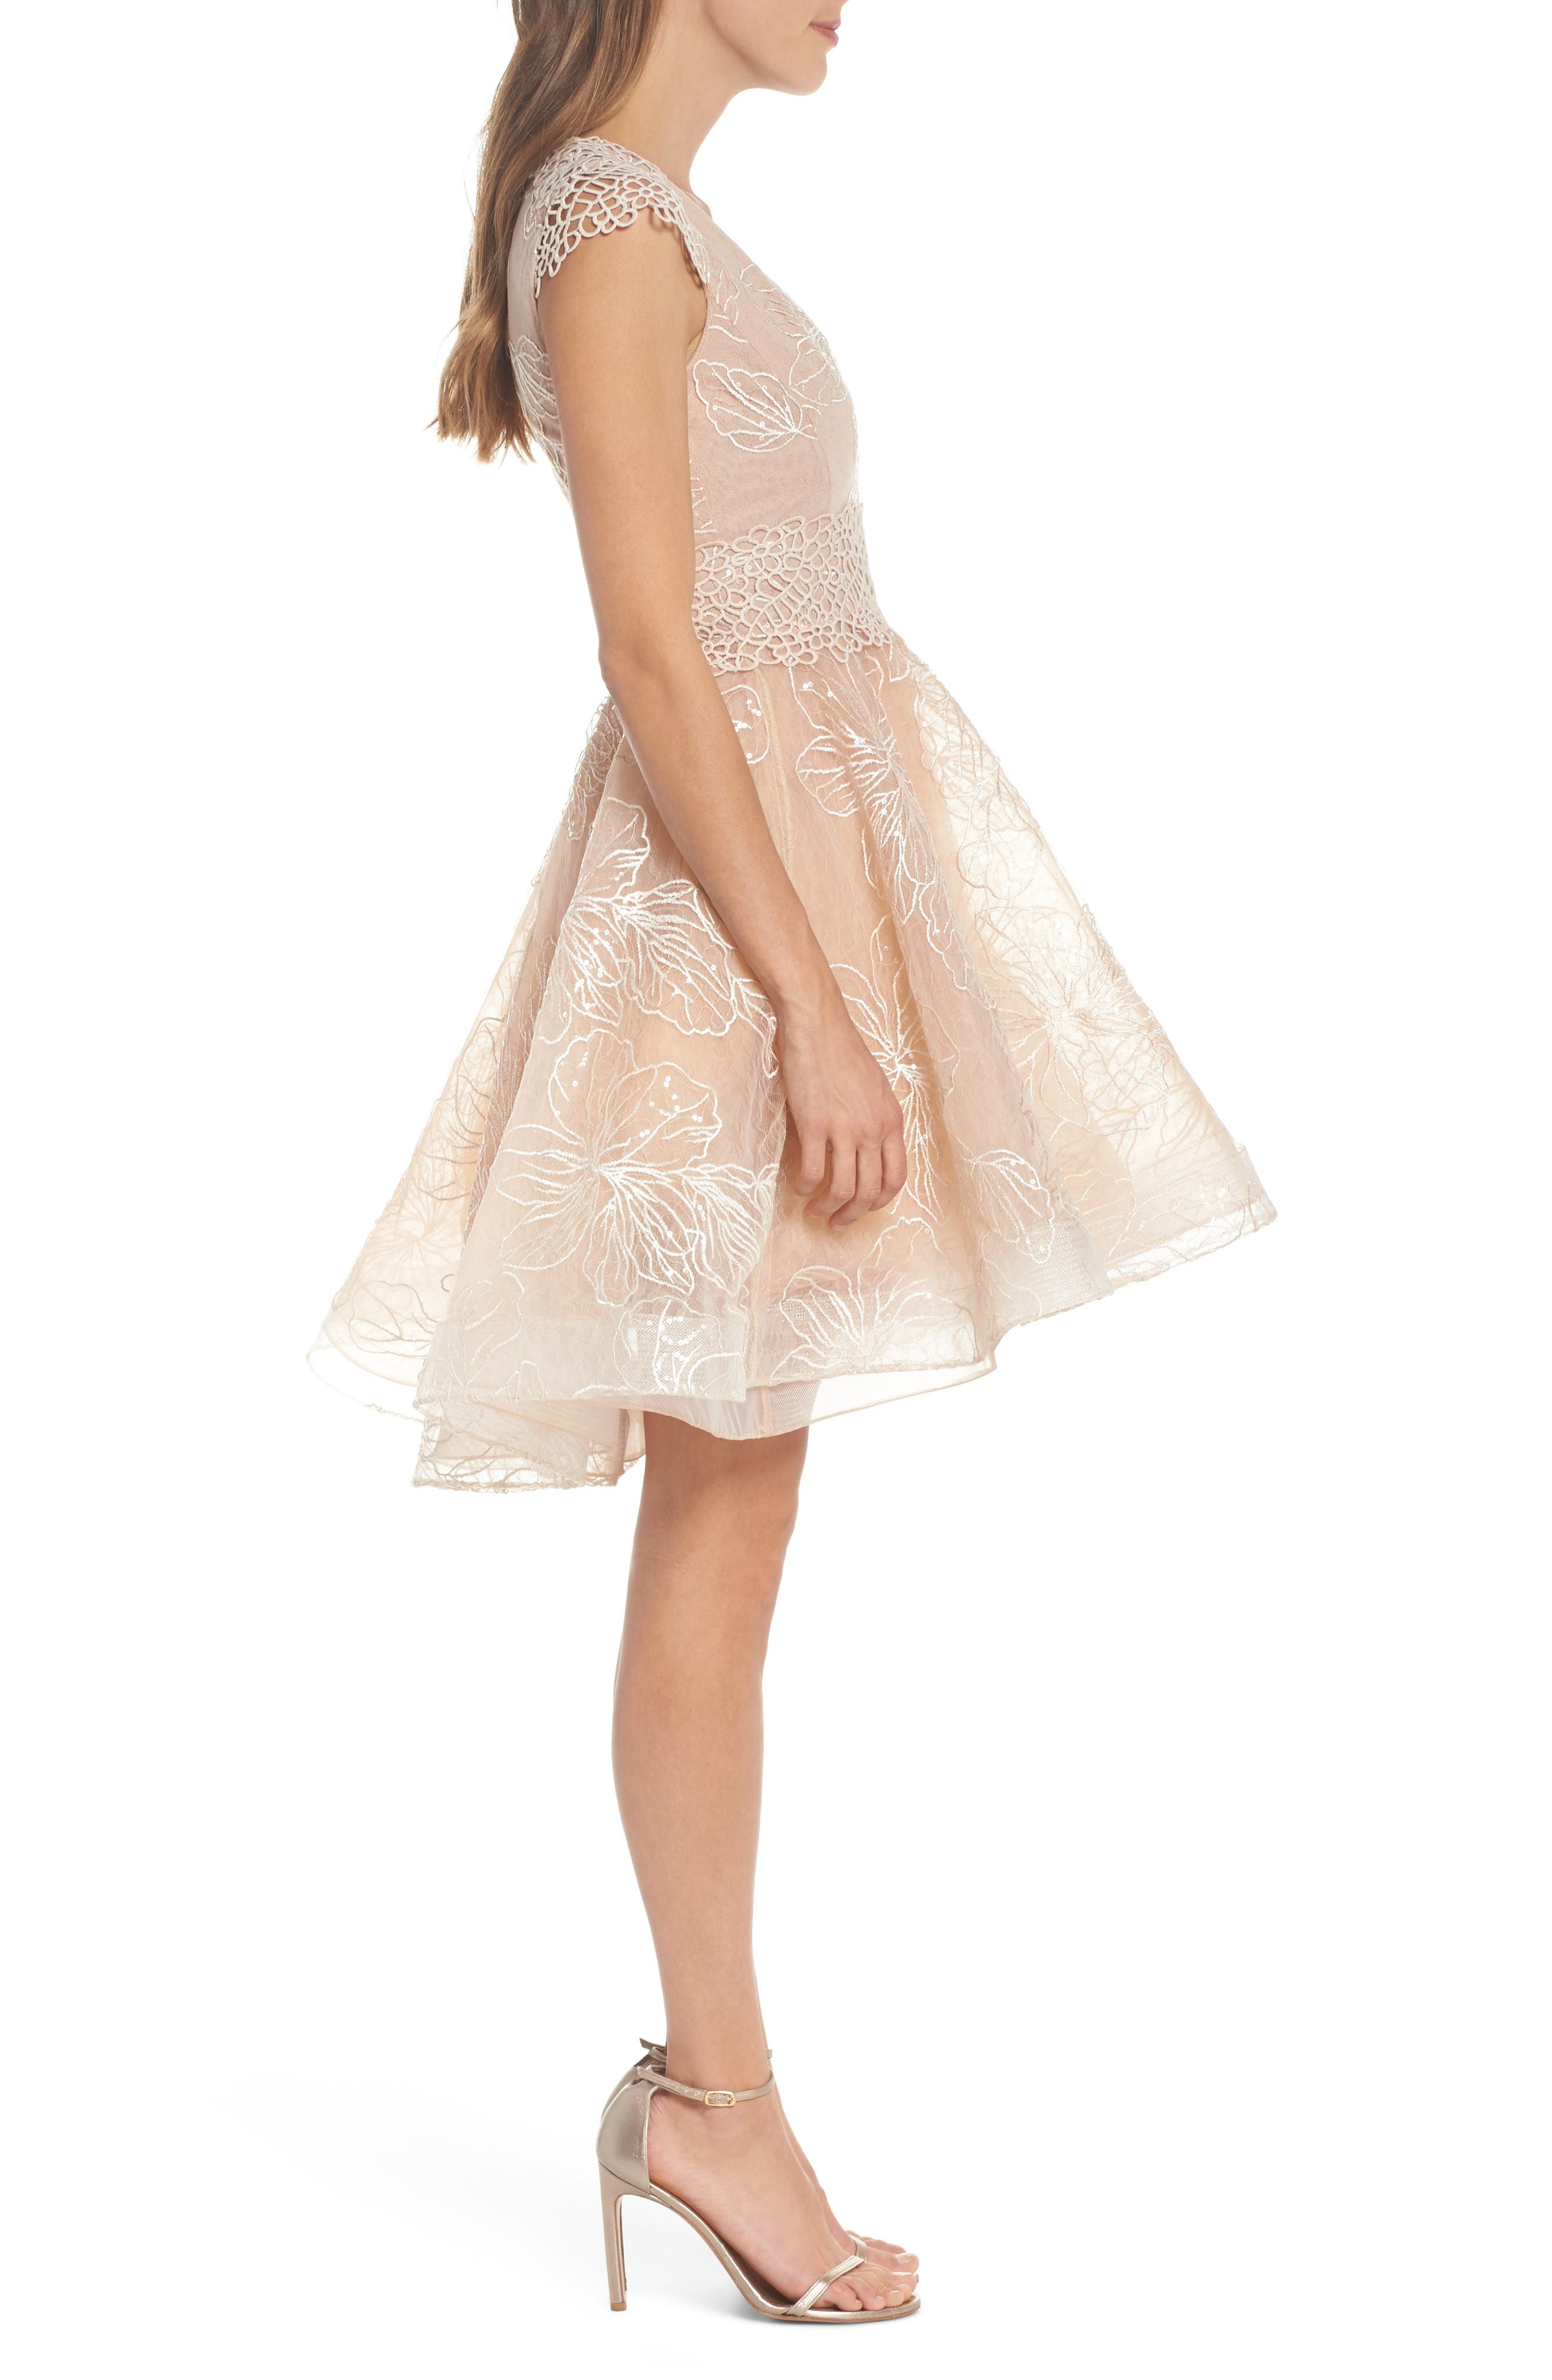 Fiore Sequin Fit & Flare Dress,                             Alternate thumbnail 3, color,                             250